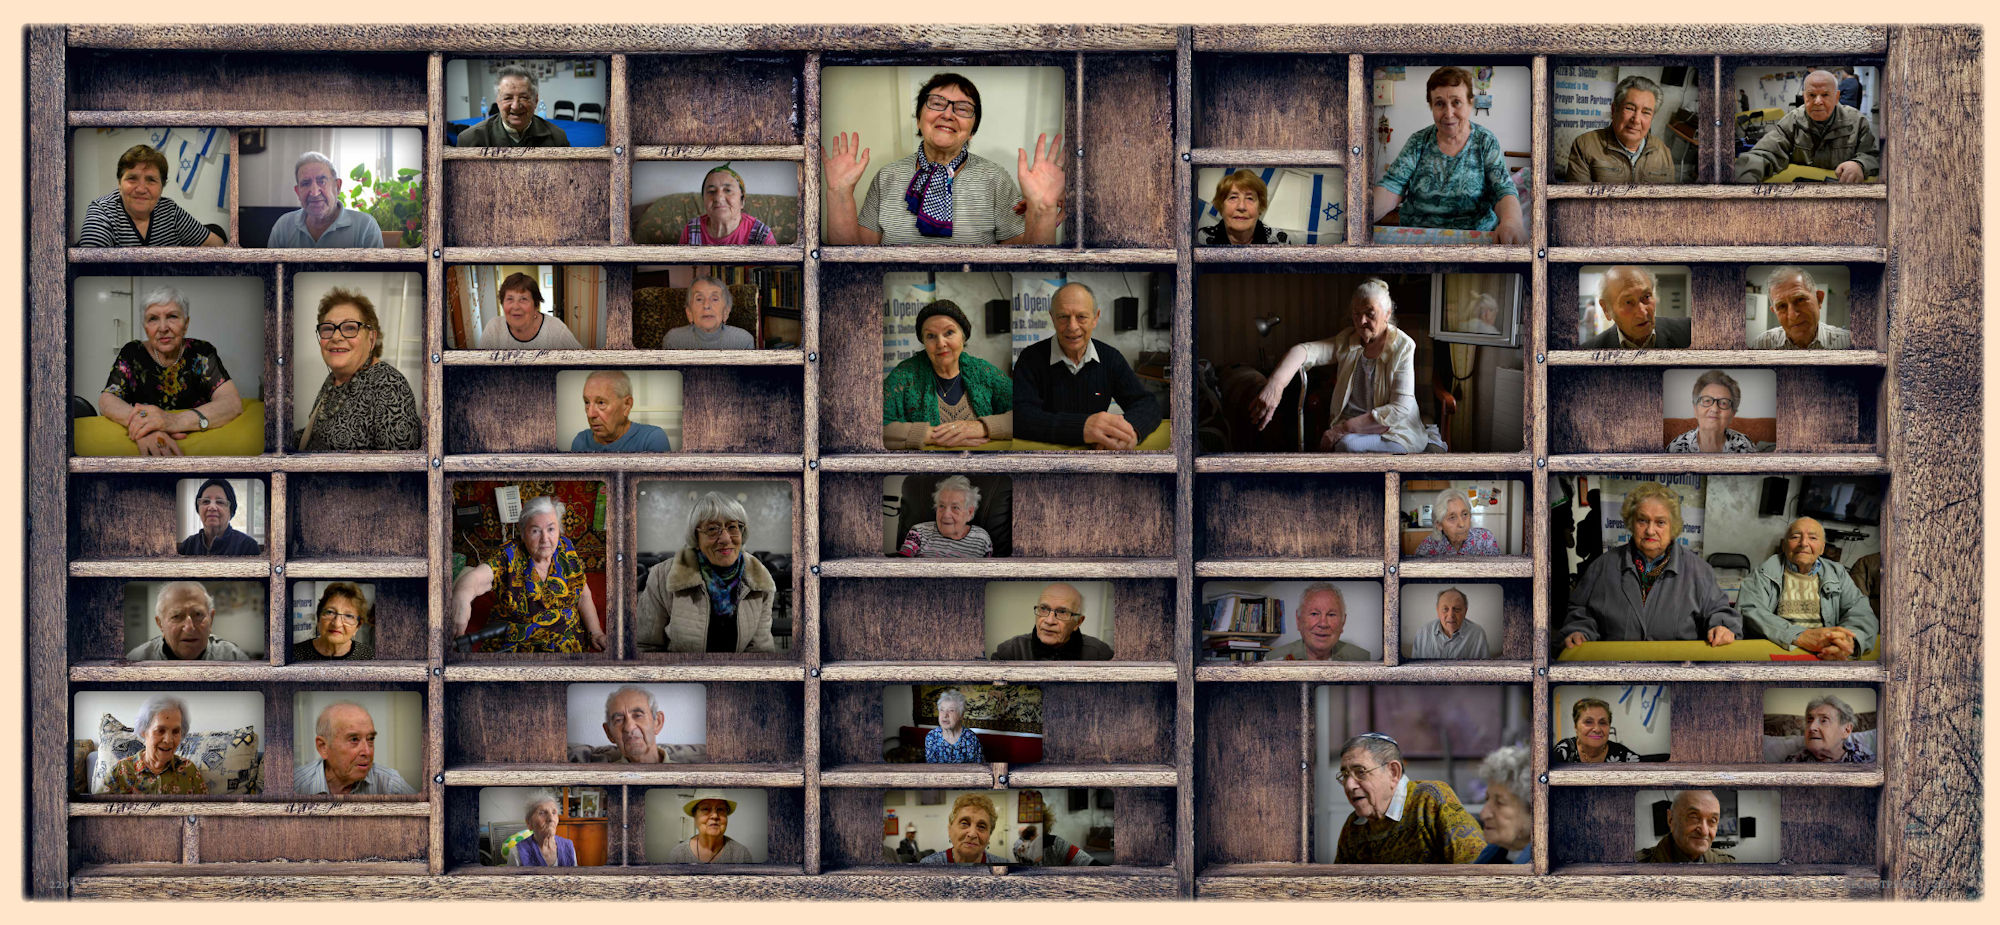 Pages-220-221: Collage of the Survivors